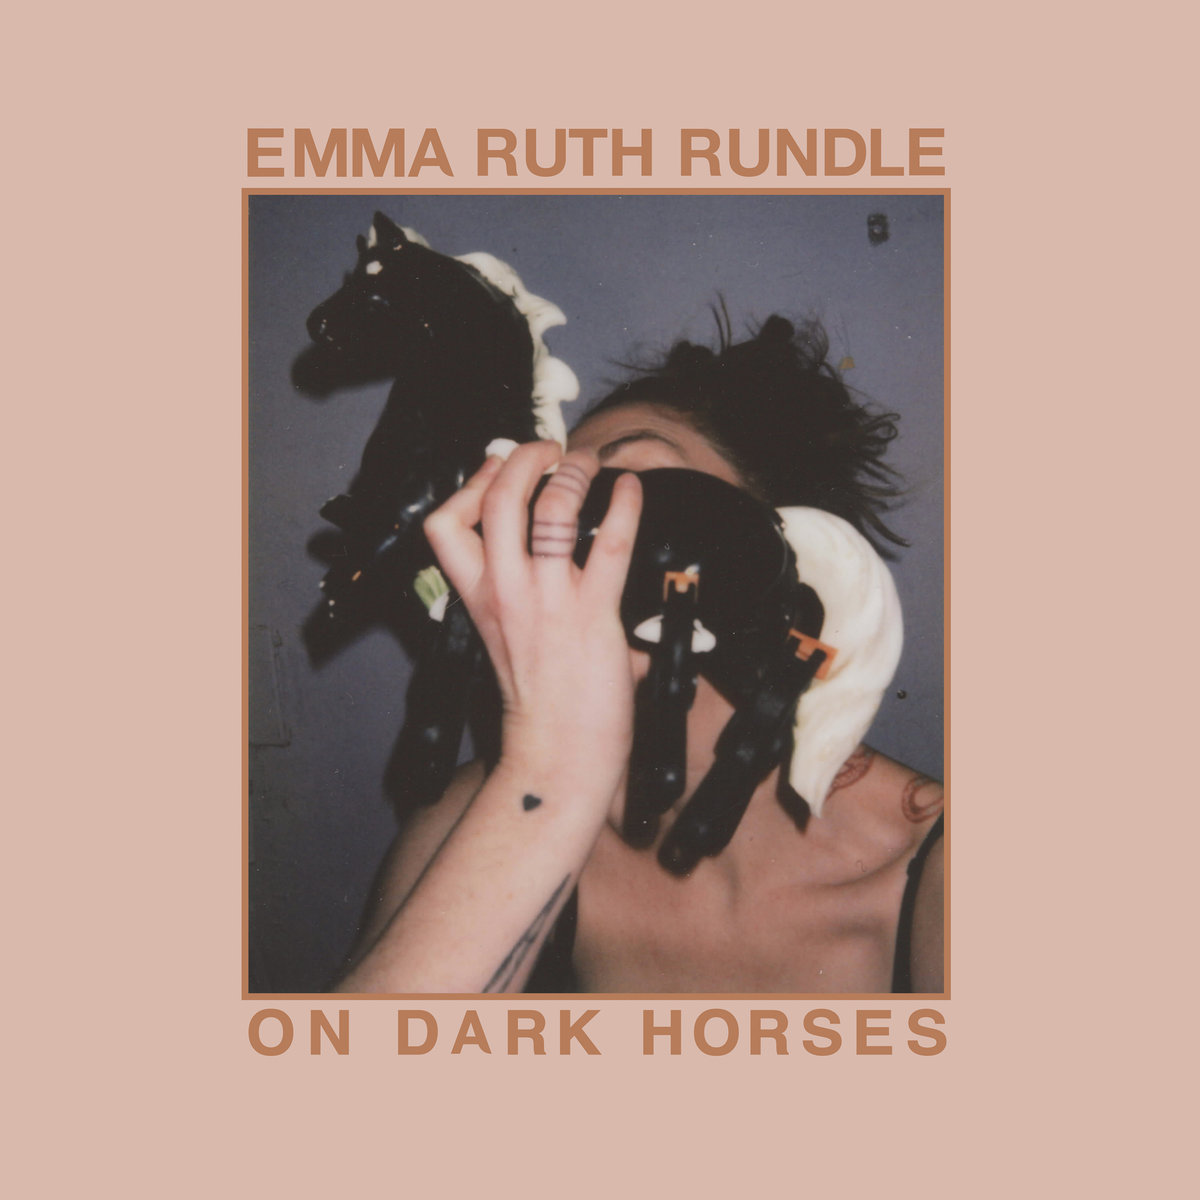 Emma Ruth Rundle On Dark Horses